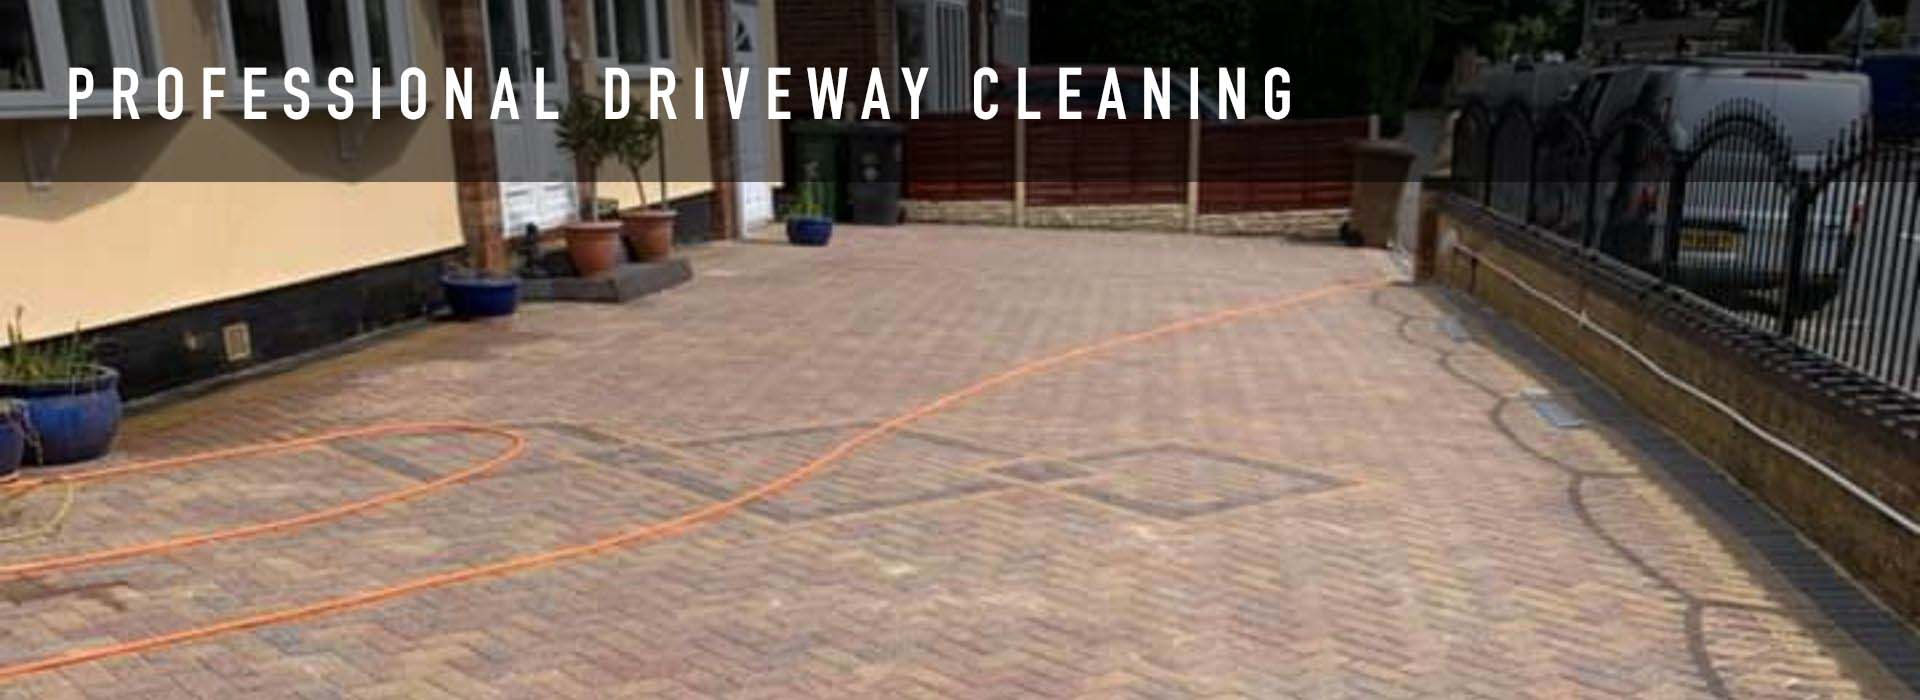 driveway cleaning worcester